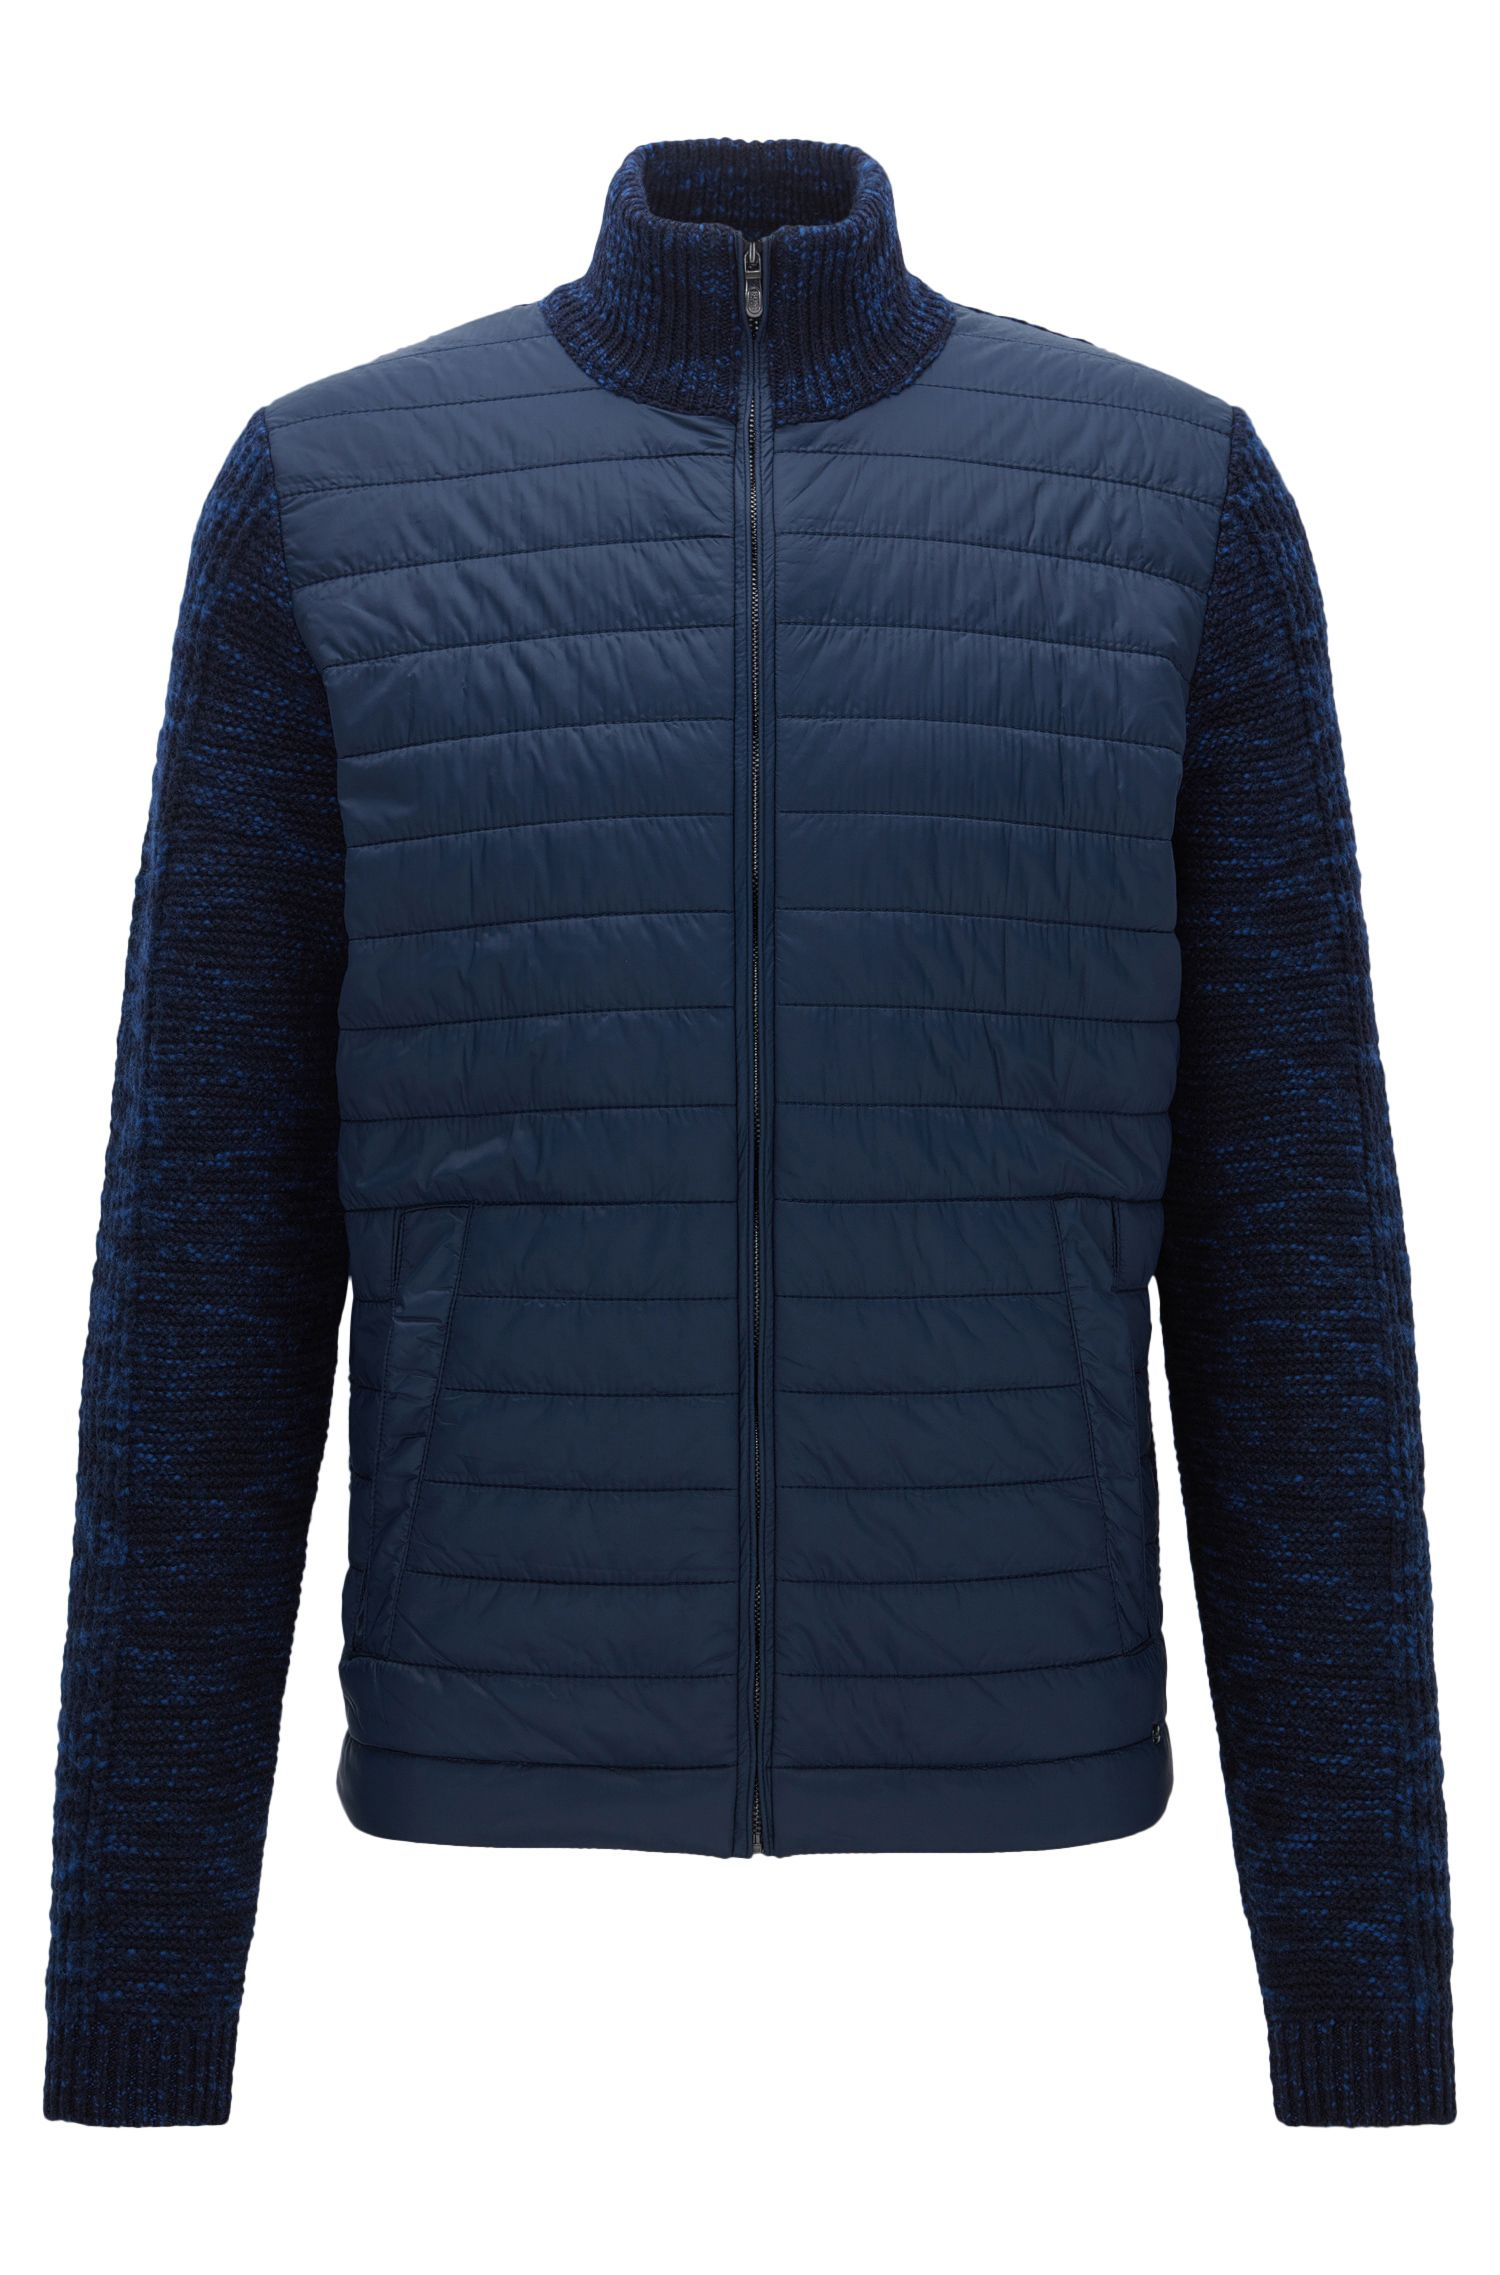 Regular-fit jacket in a knitted and padded mix